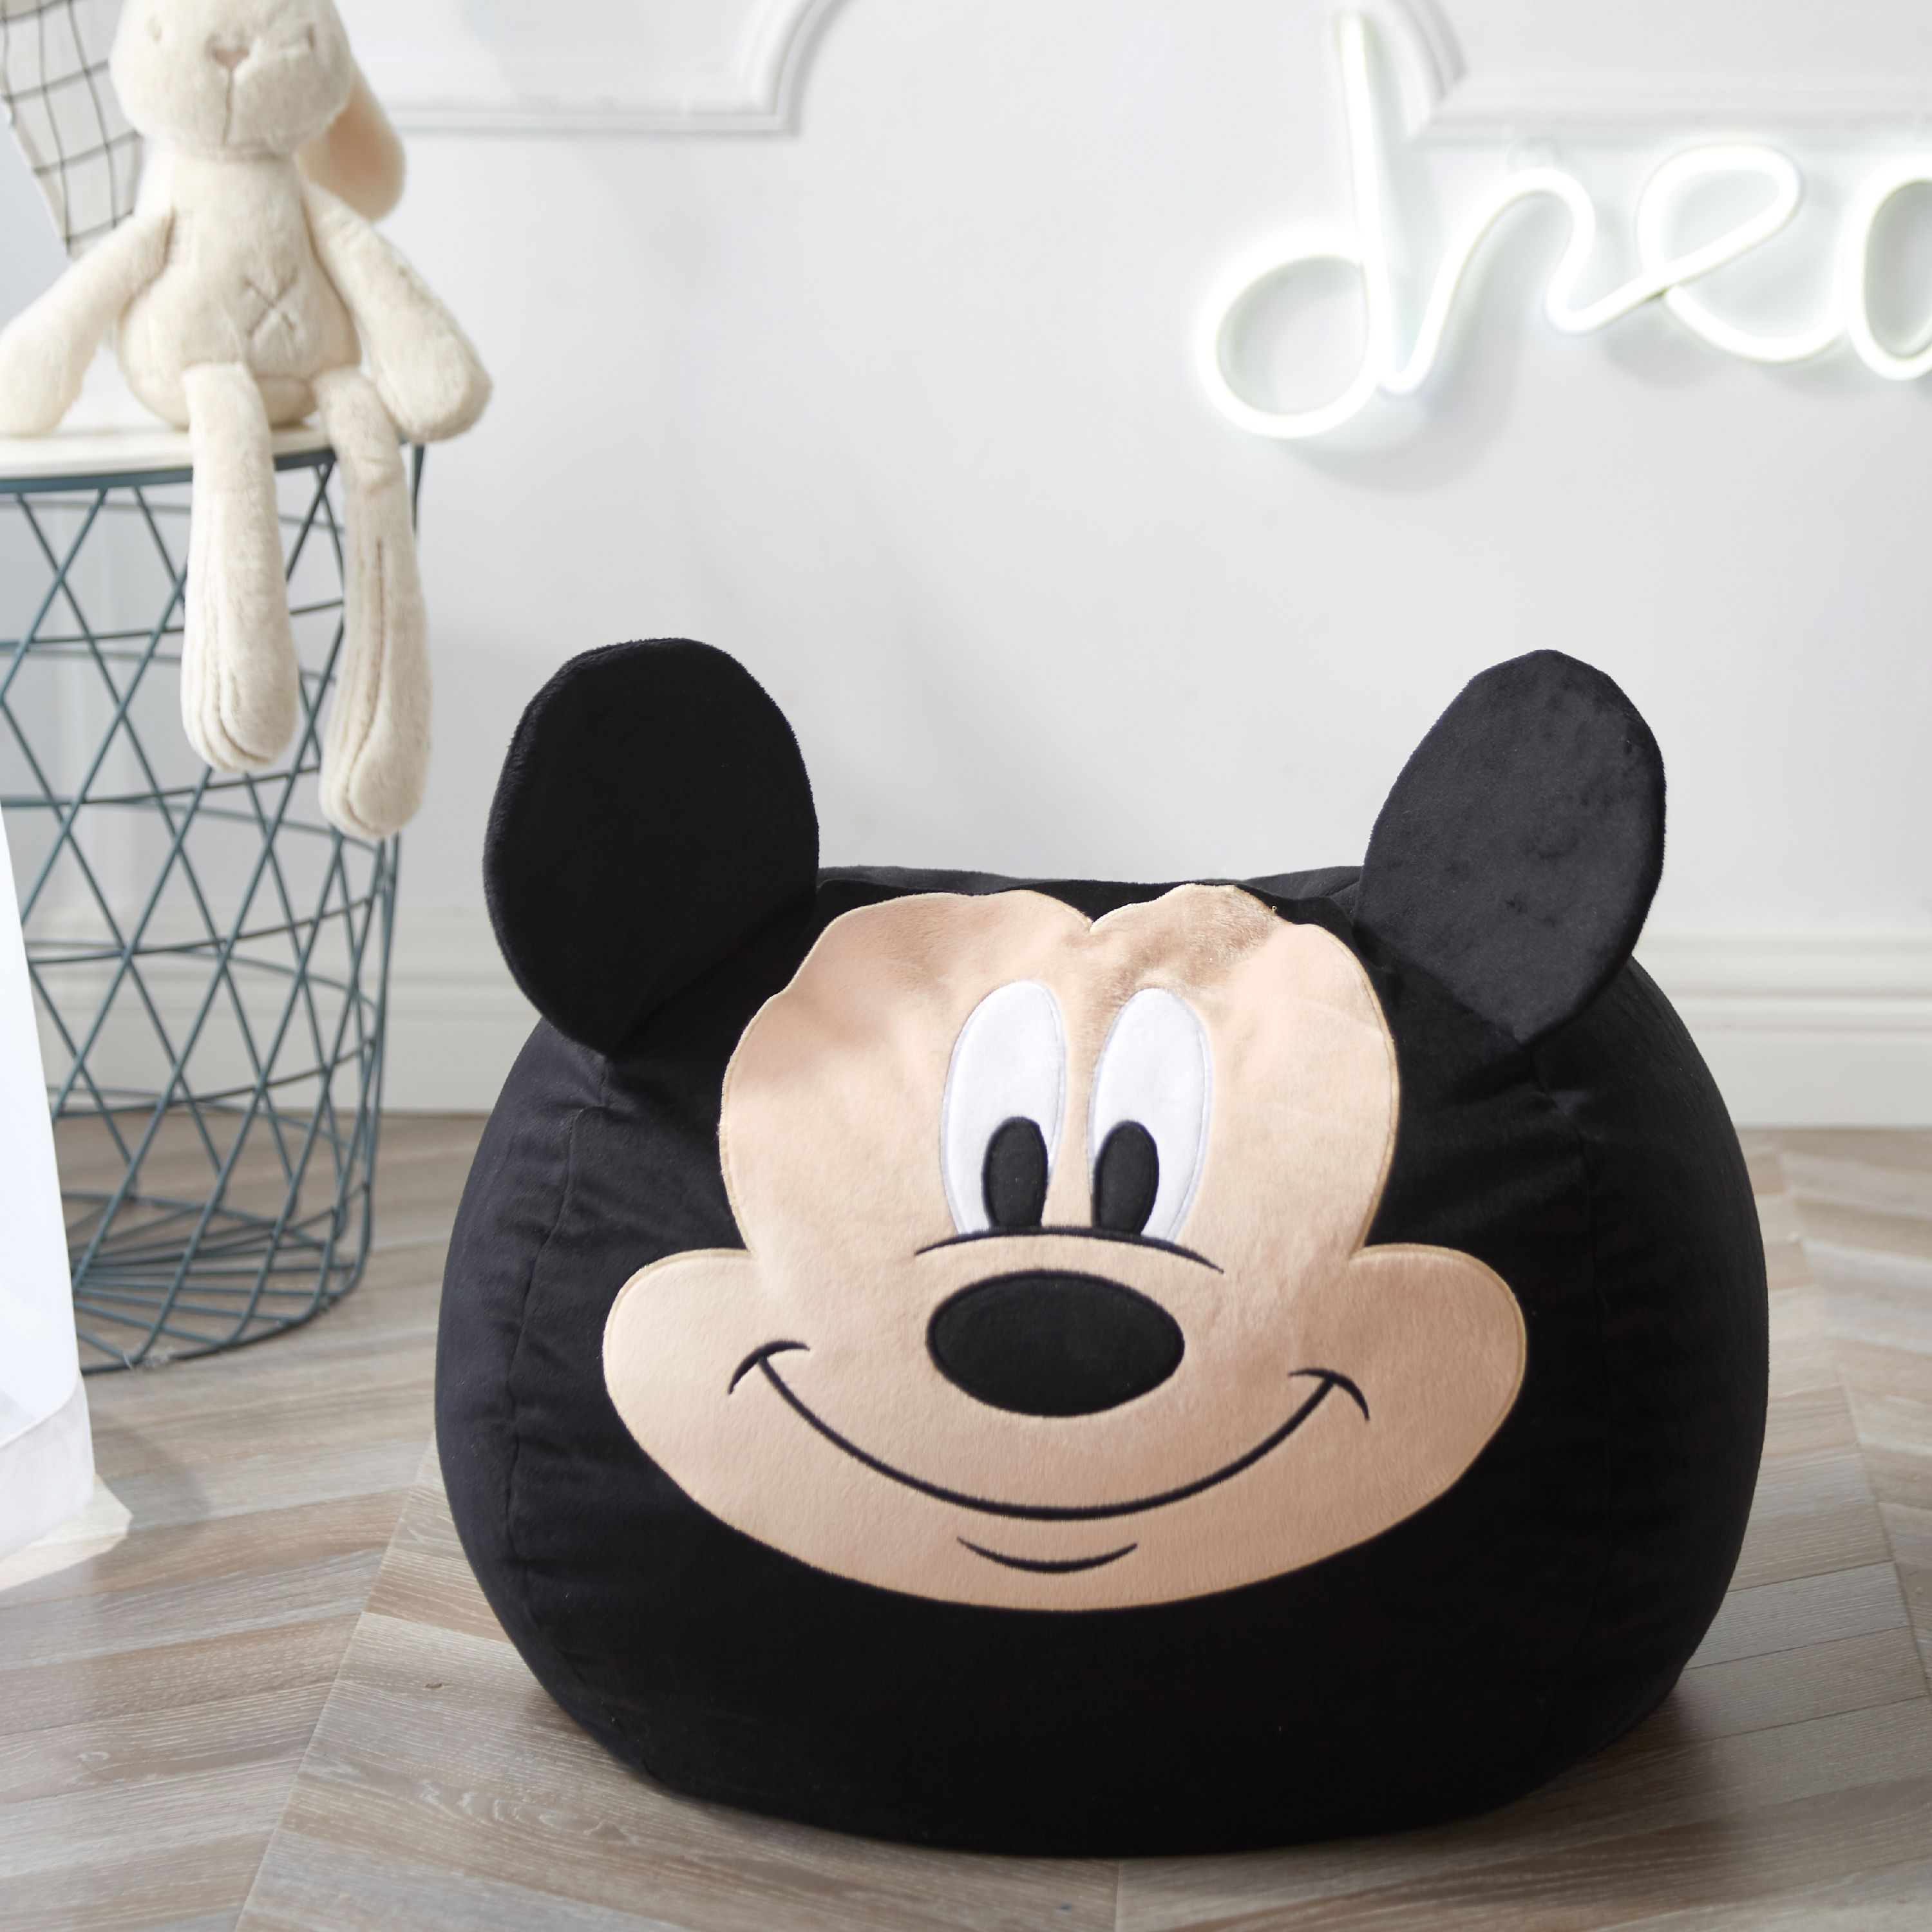 Disney Mickey Mouse Figural Bean Bag Chair